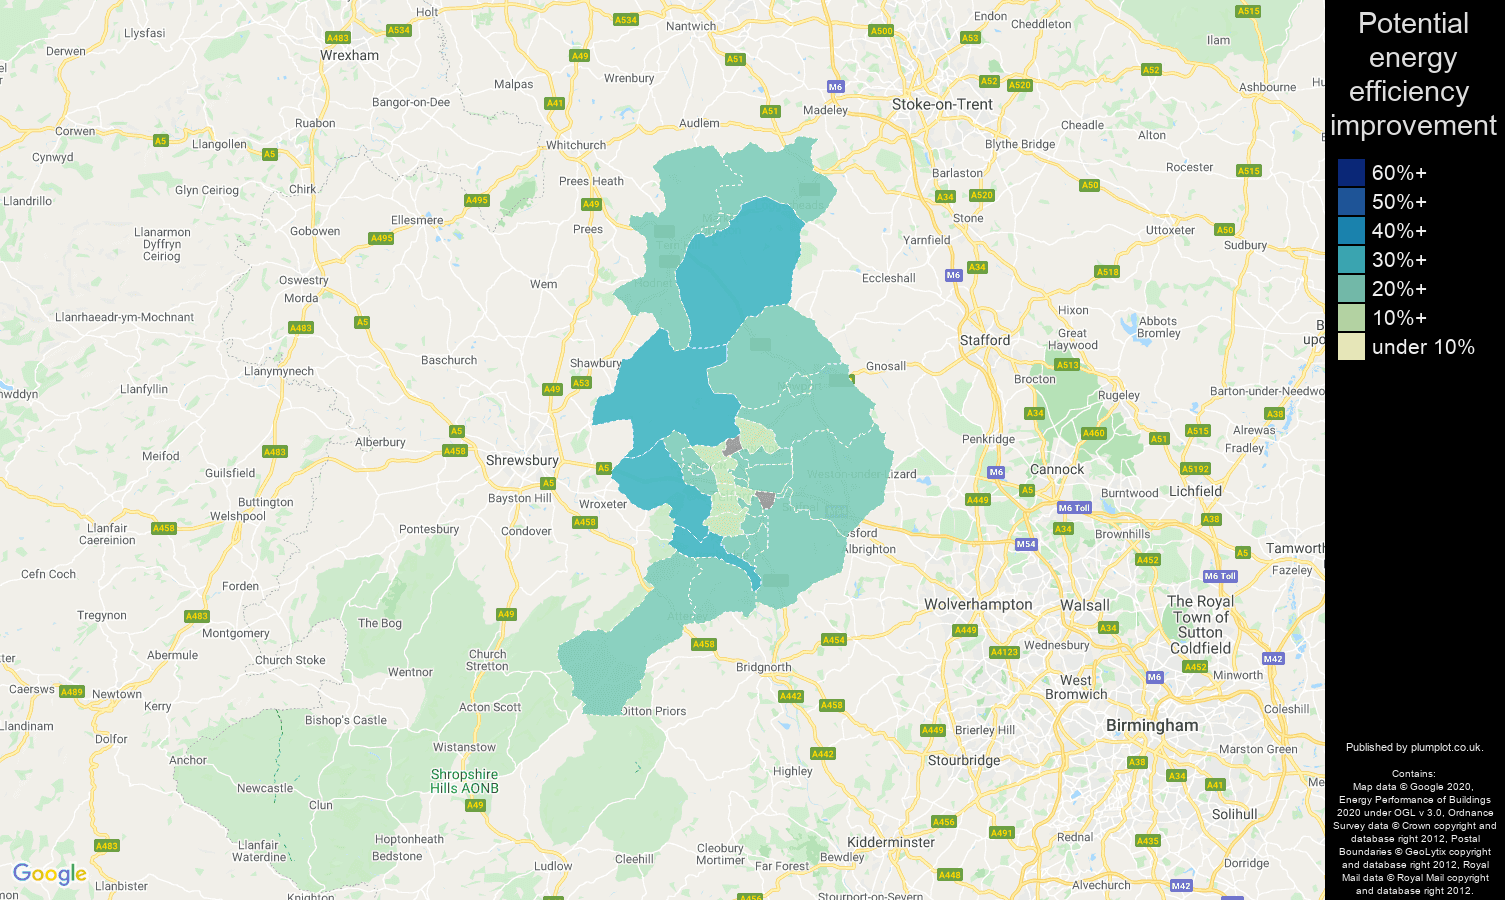 Telford map of potential energy efficiency improvement of houses